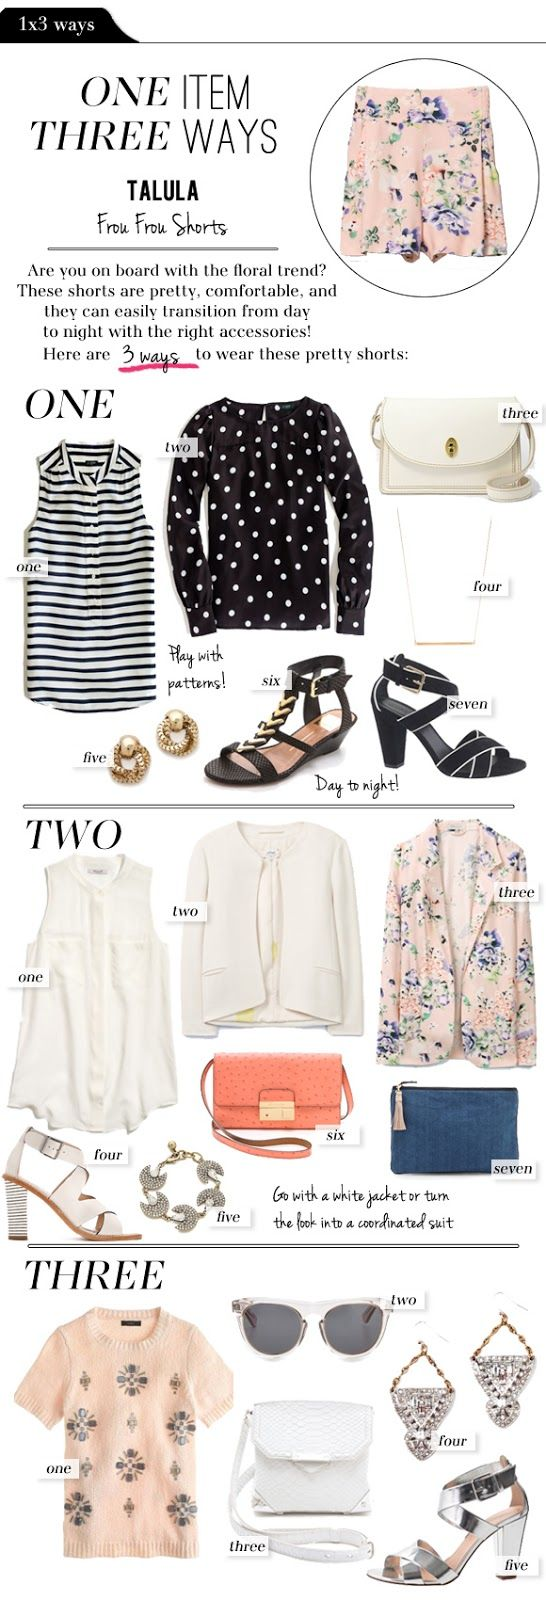 These versatile shoes go with lots of different outfits. styled here